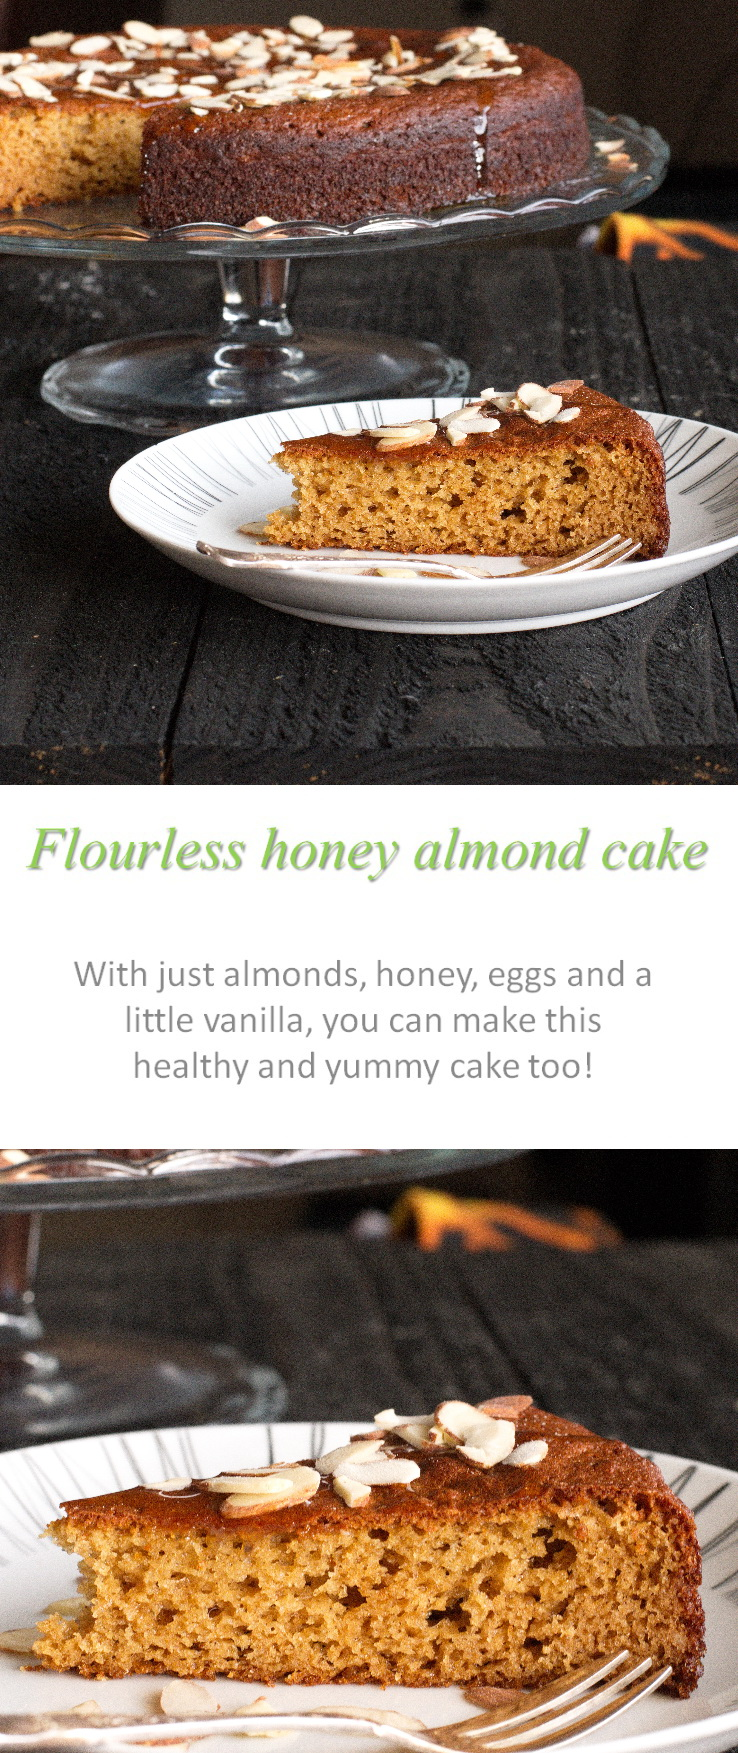 A light, flourless honey almond cake that is really yummy with cream, or just by itself! #flourless #honey #cake #glutenfree #dairyfree #paleo #norefinedsugar